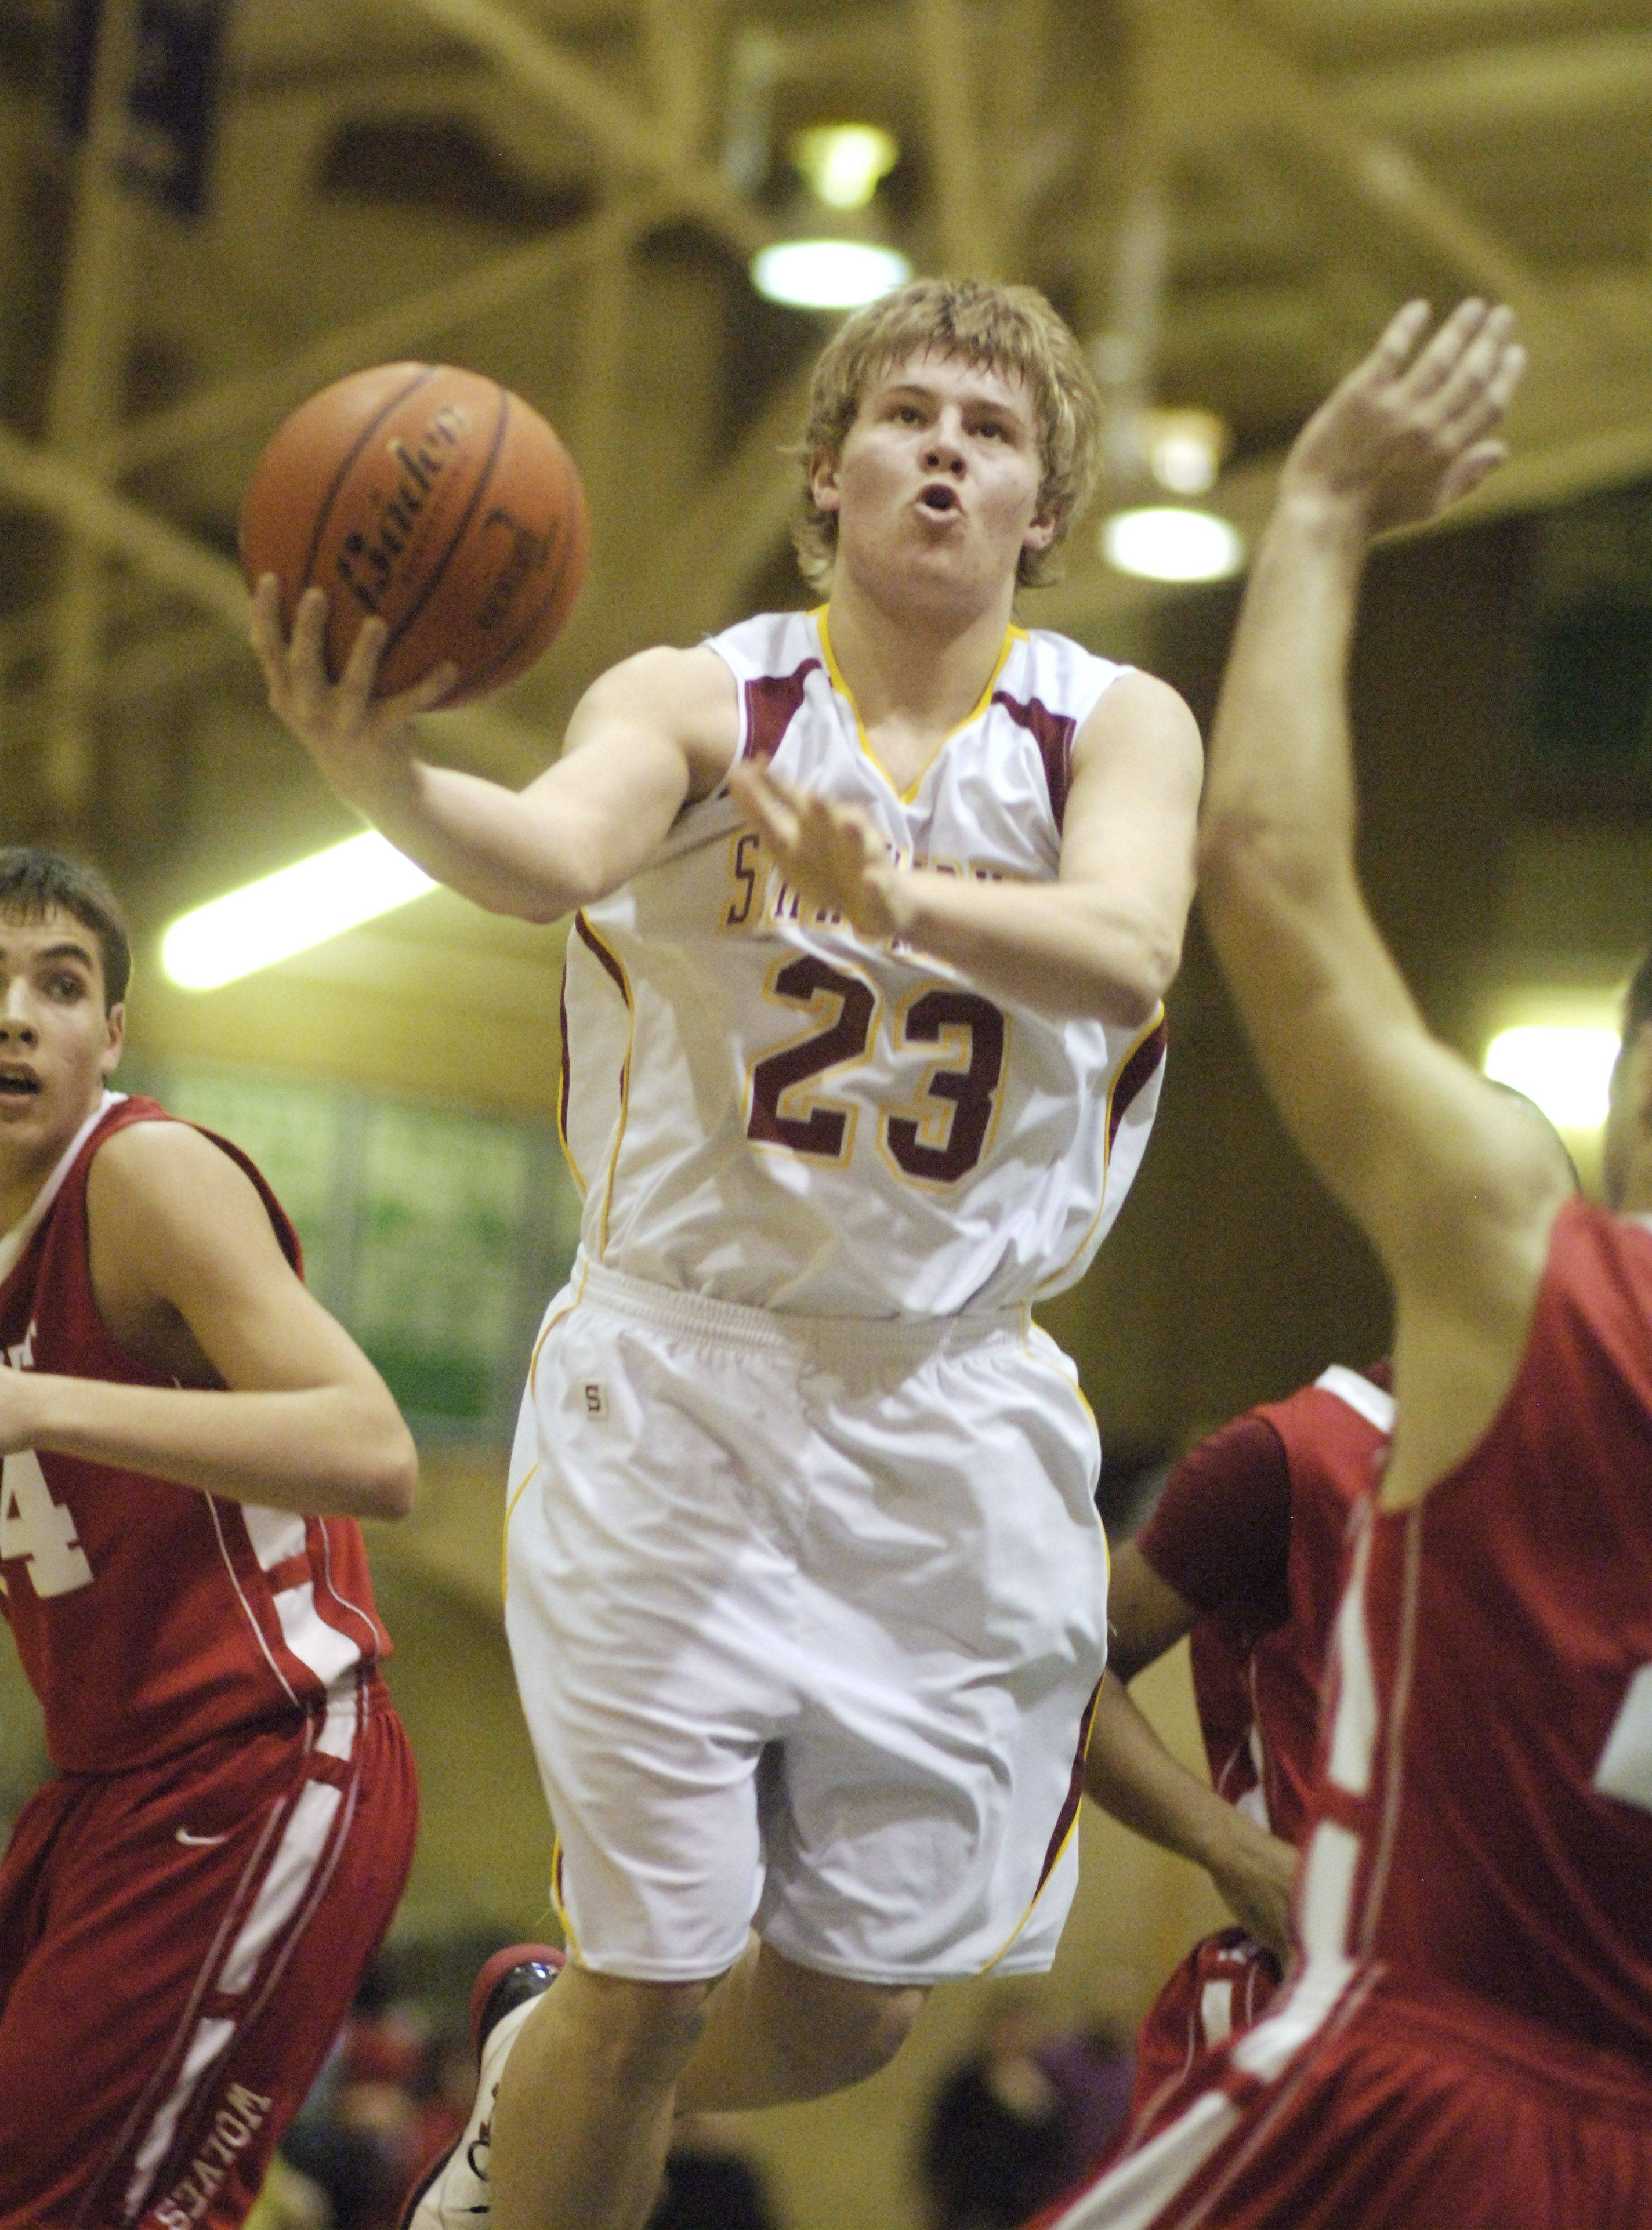 Schaumburg's Kyle Bolger drives to the basket against Niles West during Wednesday's sectional semifinal at New Trier.